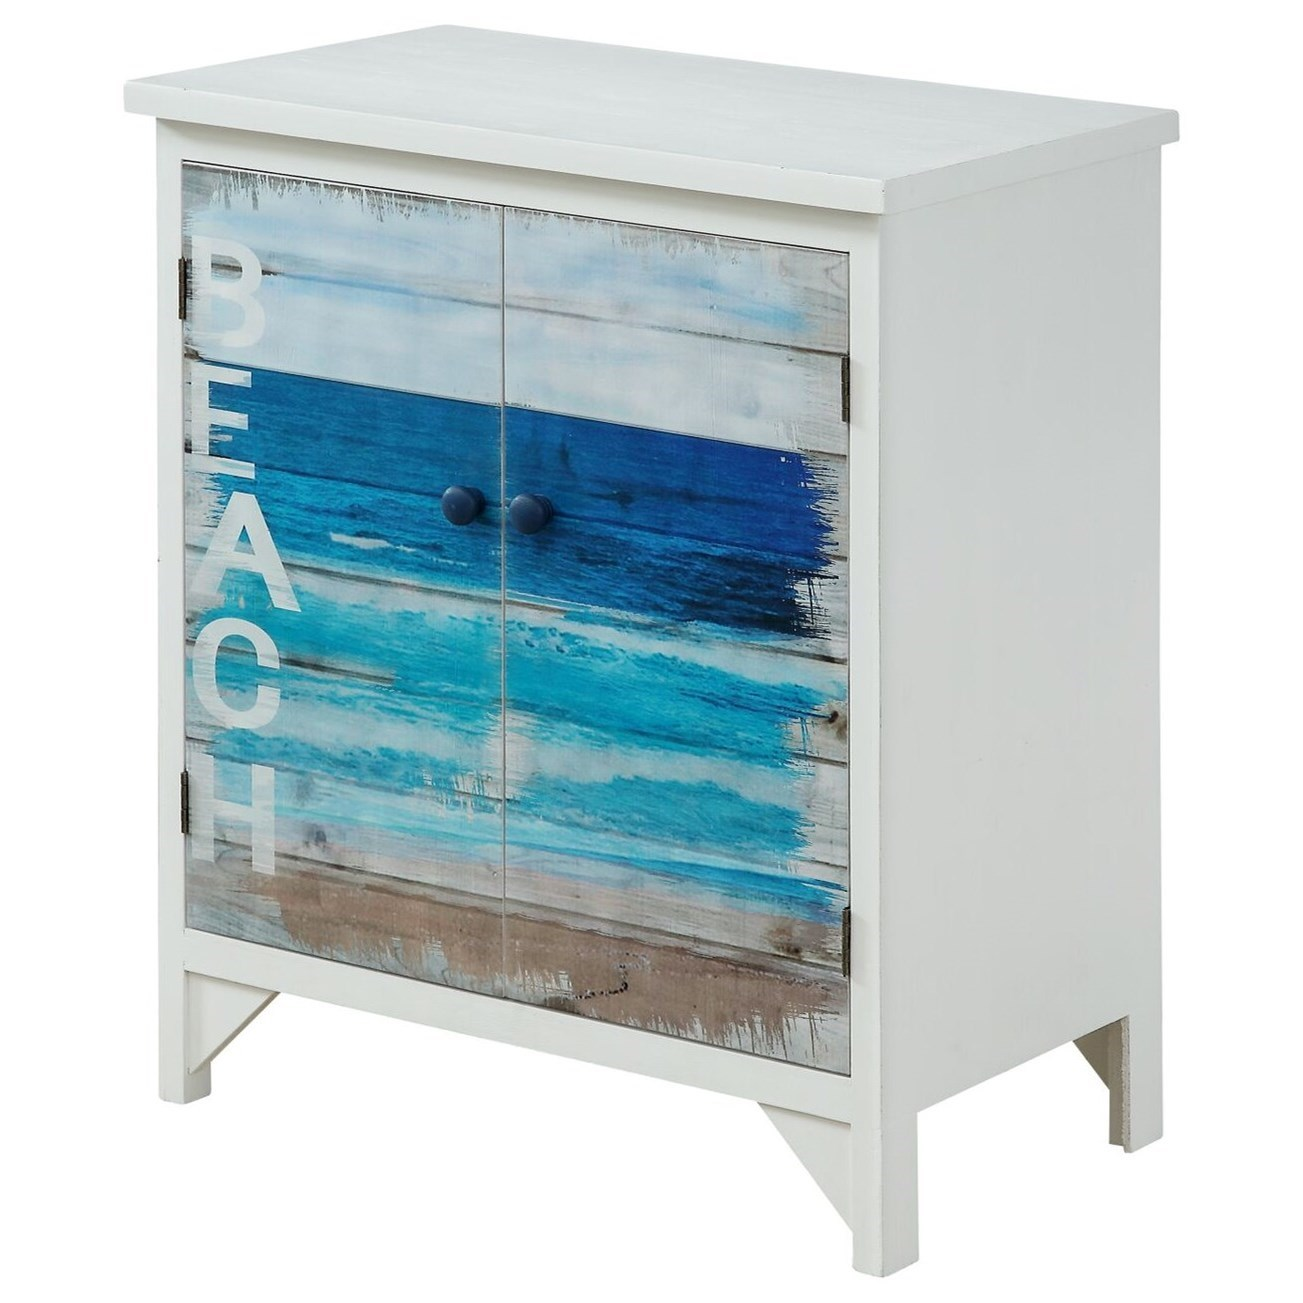 coast imports accents coastal beach products color accent furniture storage cabinet two door unique pieces wood and steel end table mirror living room glass chairs tall narrow